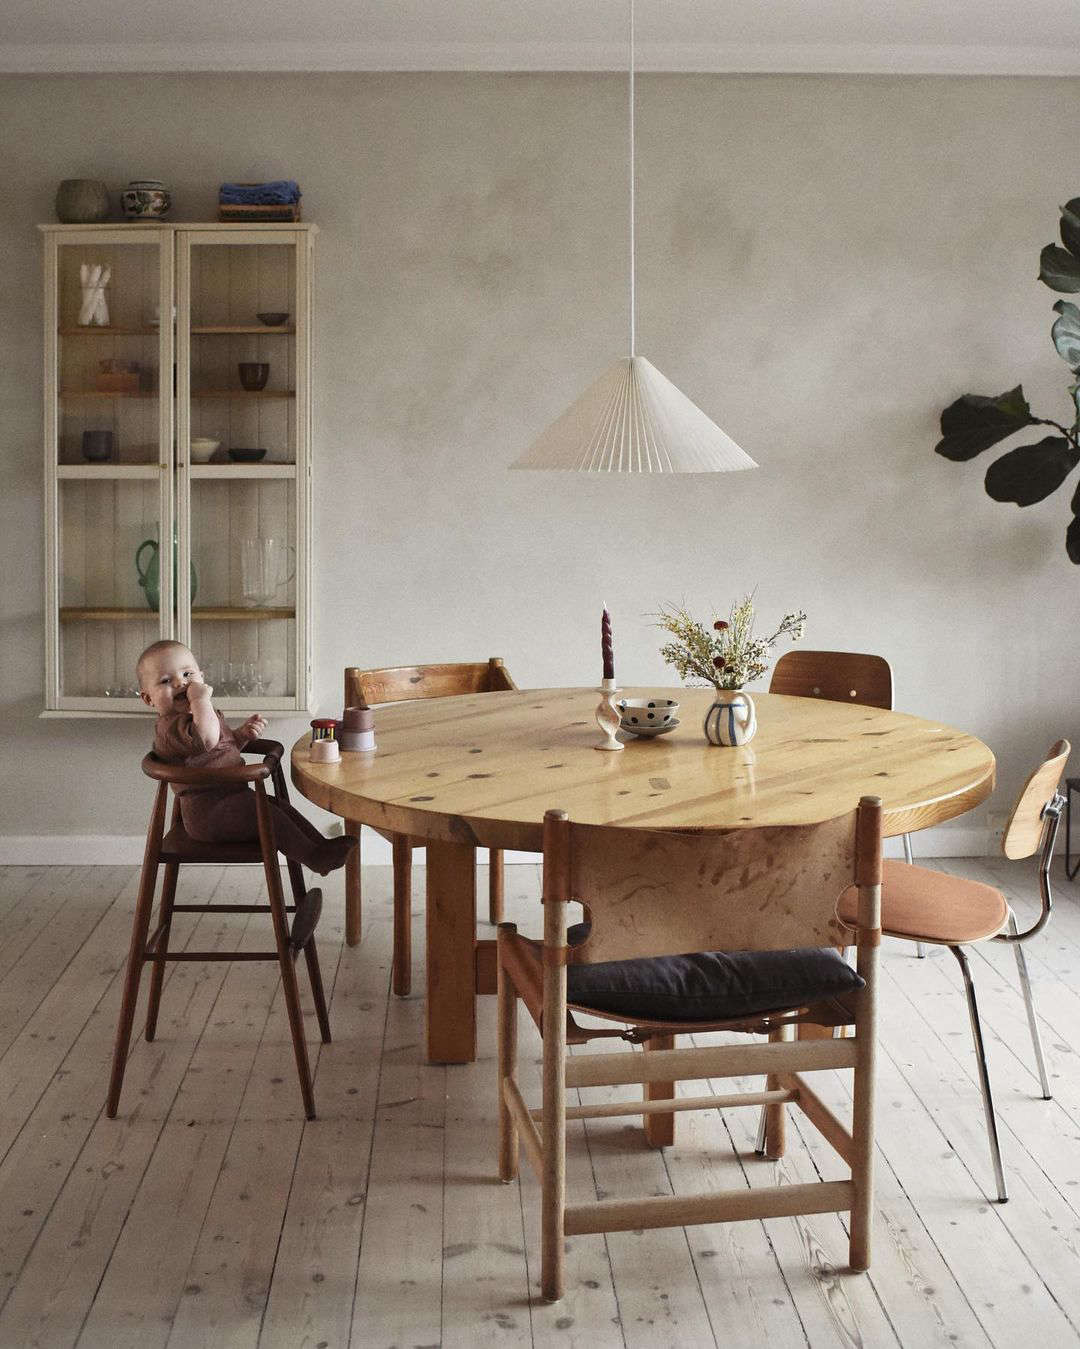 vintage seating, including a vintage high chair, surround a sturdy pine table. 9